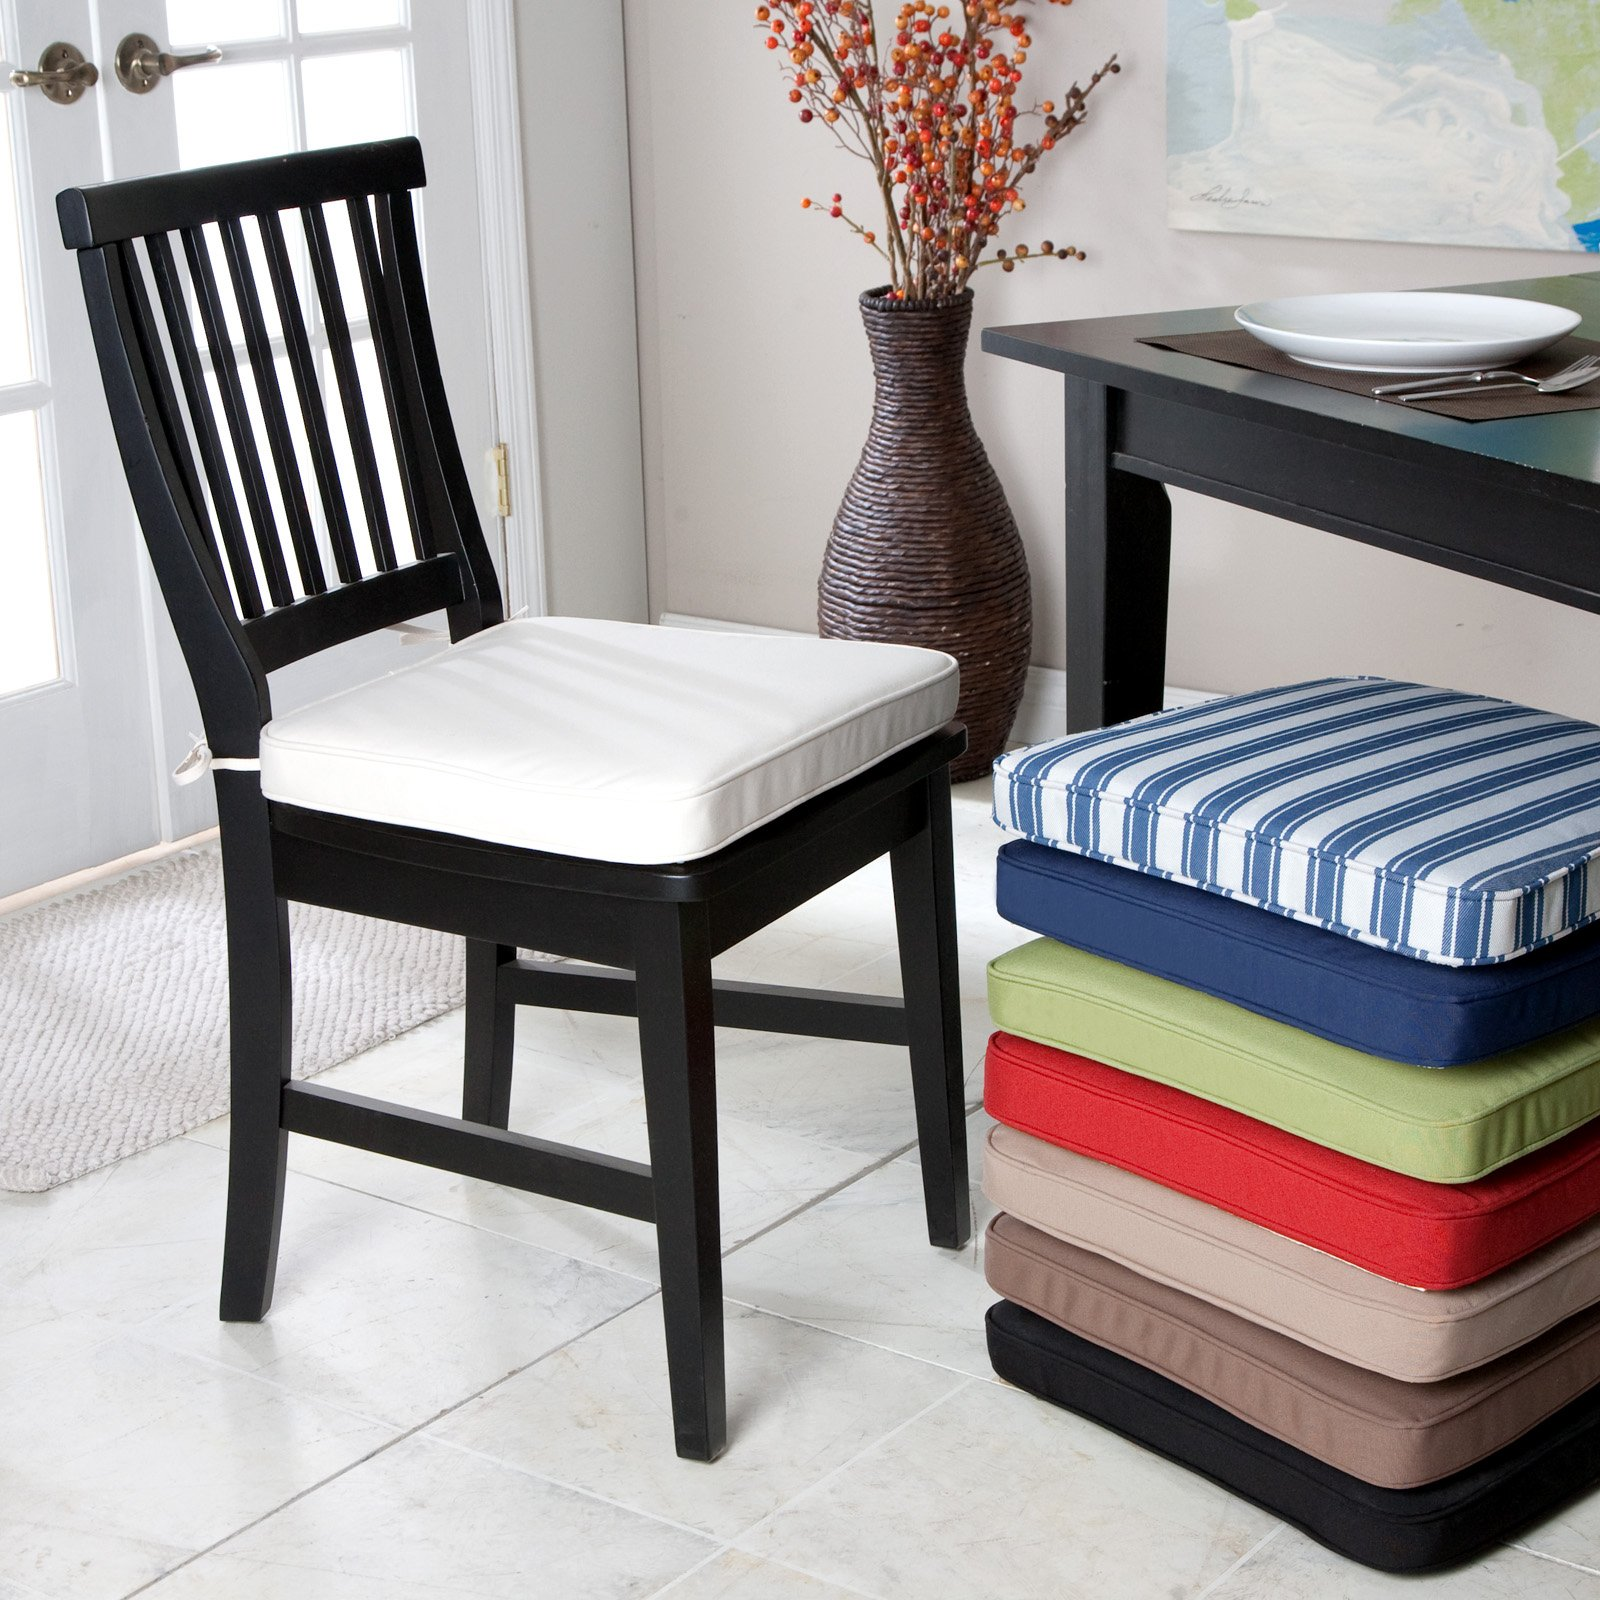 Seat Cushions For Dining Room Chairs Seat Cushions Dining Room Chairs Large And Beautiful